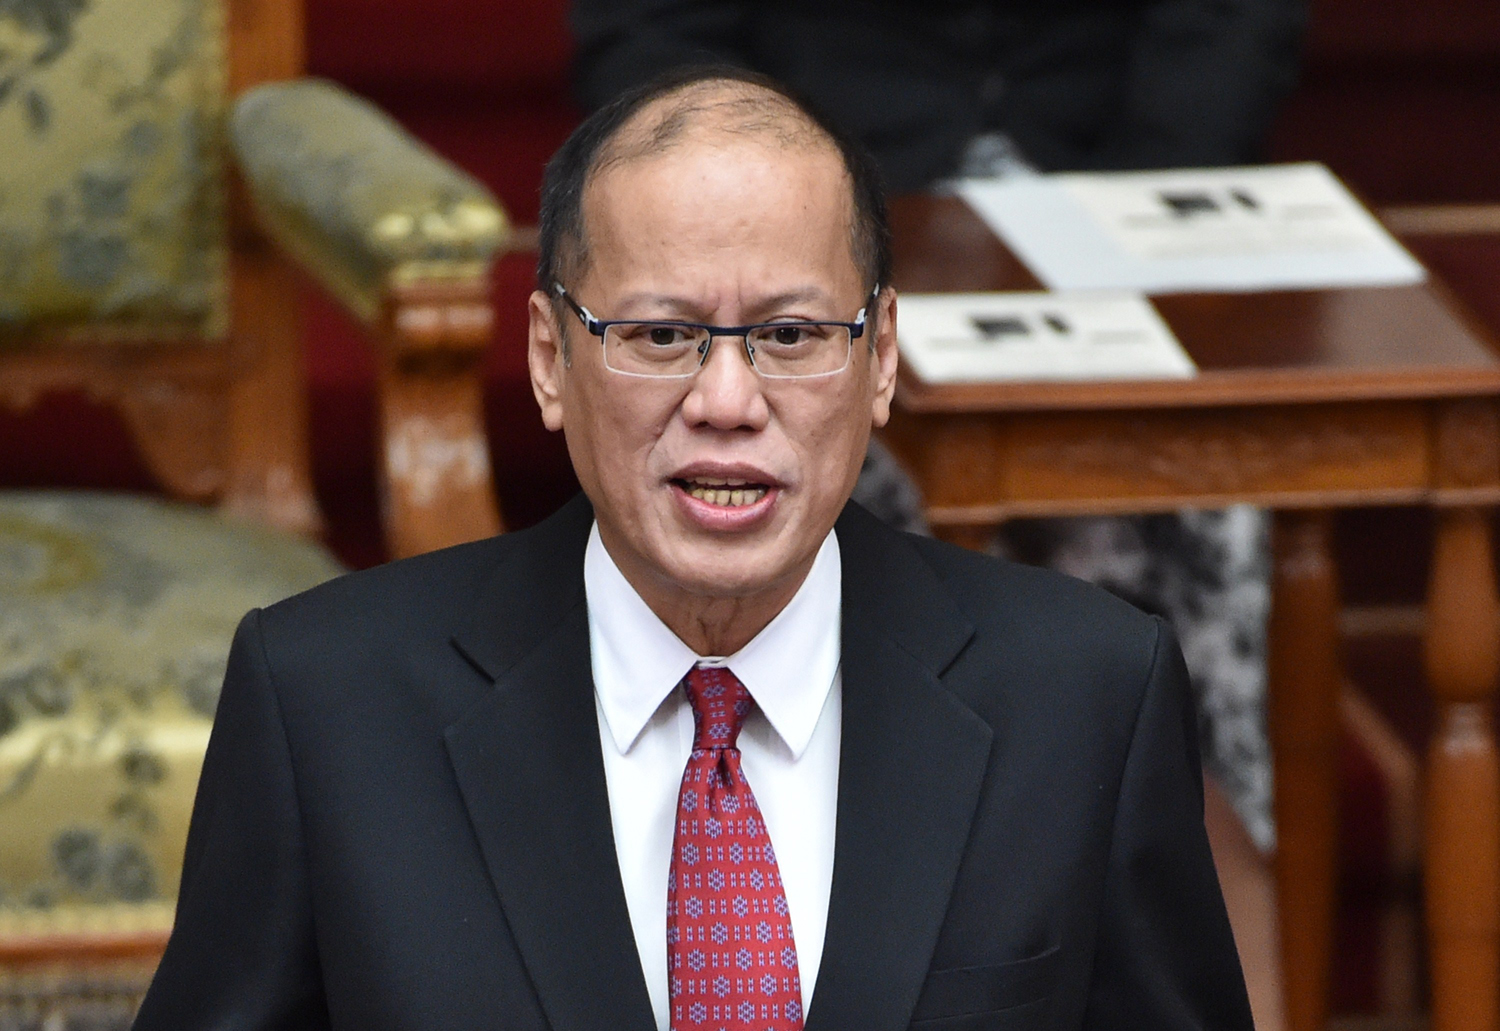 Philippine President Benigno Aquino delivers a speech in the Japanese parliament during his visit to Tokyo on June 3, 2015.